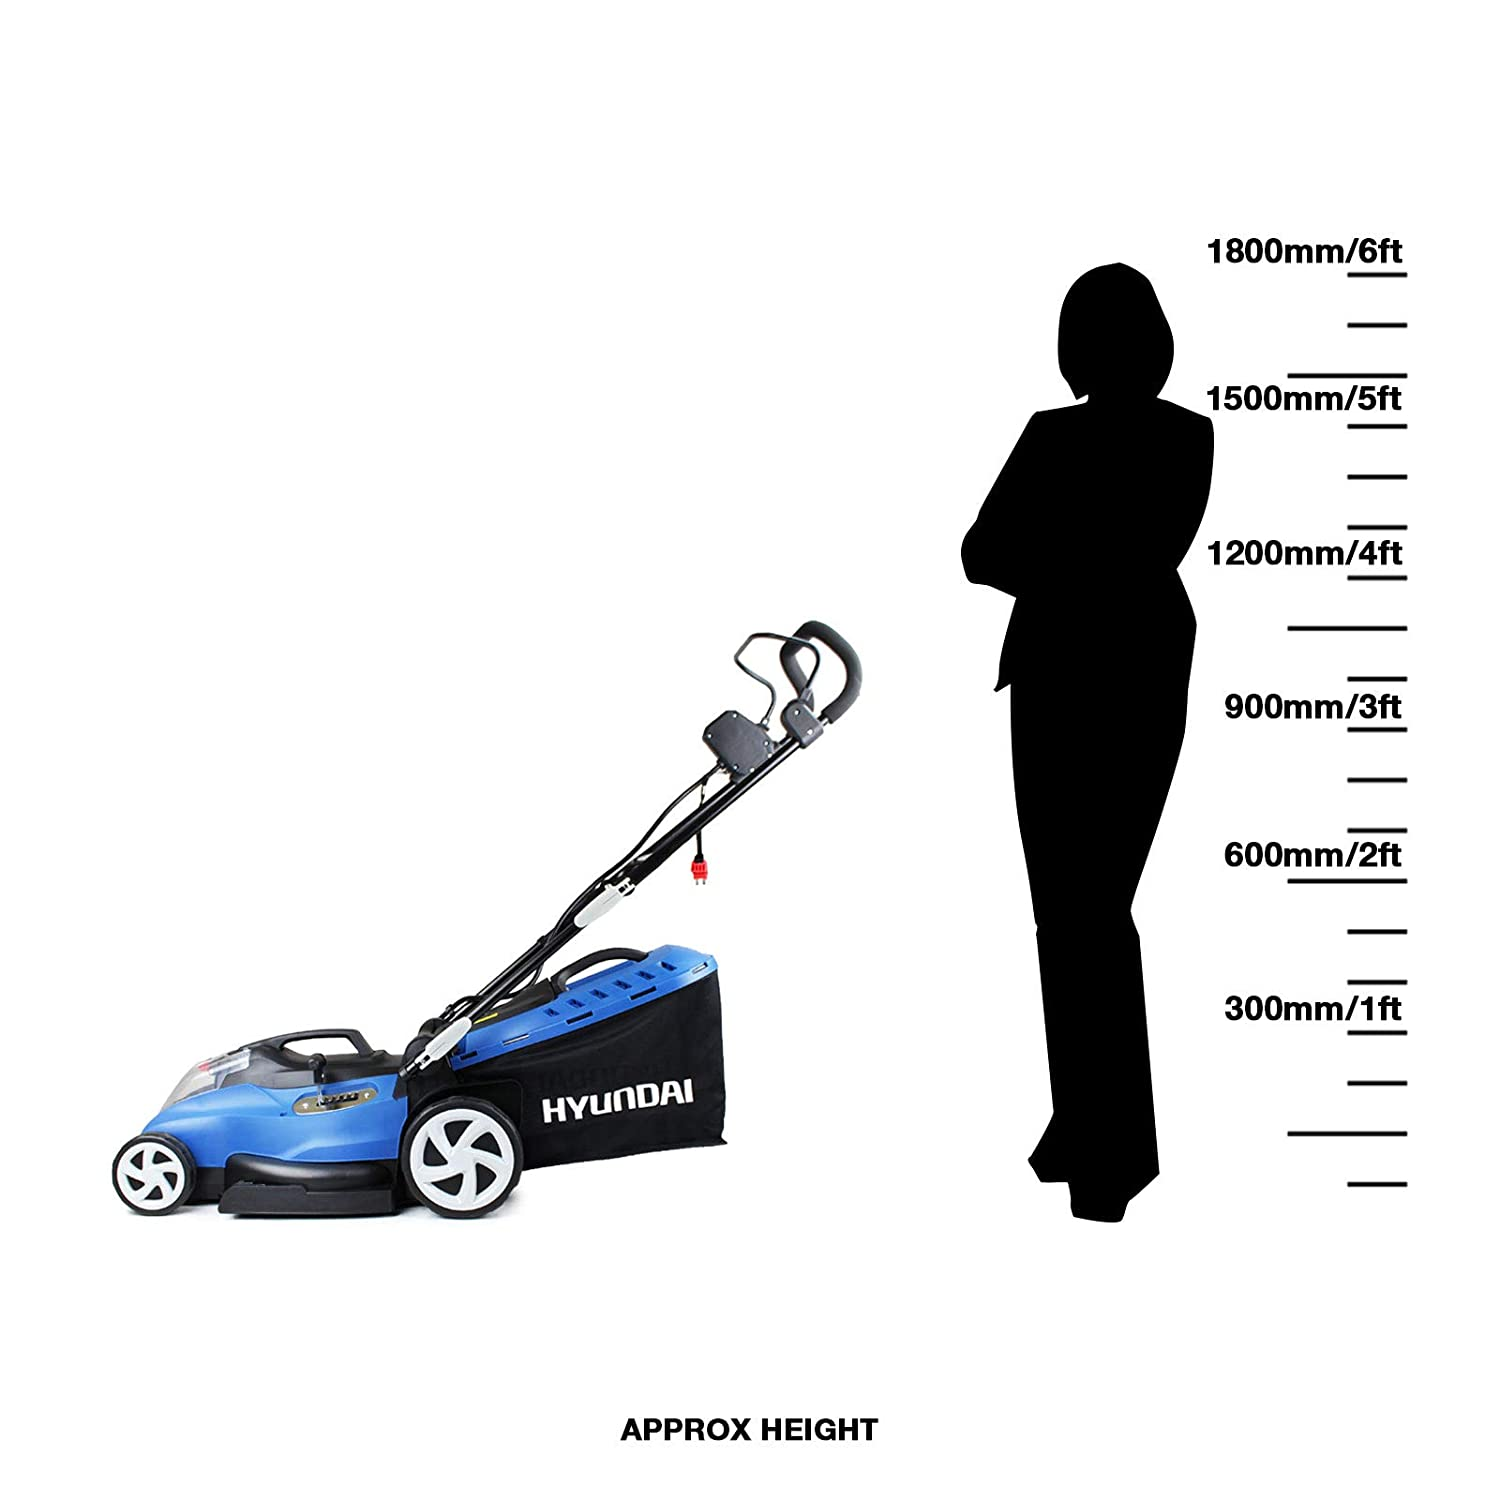 Blue Hyundai Cordless Battery Powered Lawn Mower Cutting Width 42cm with 60V Lithium Ion Battery /& Charger HYM60LI420